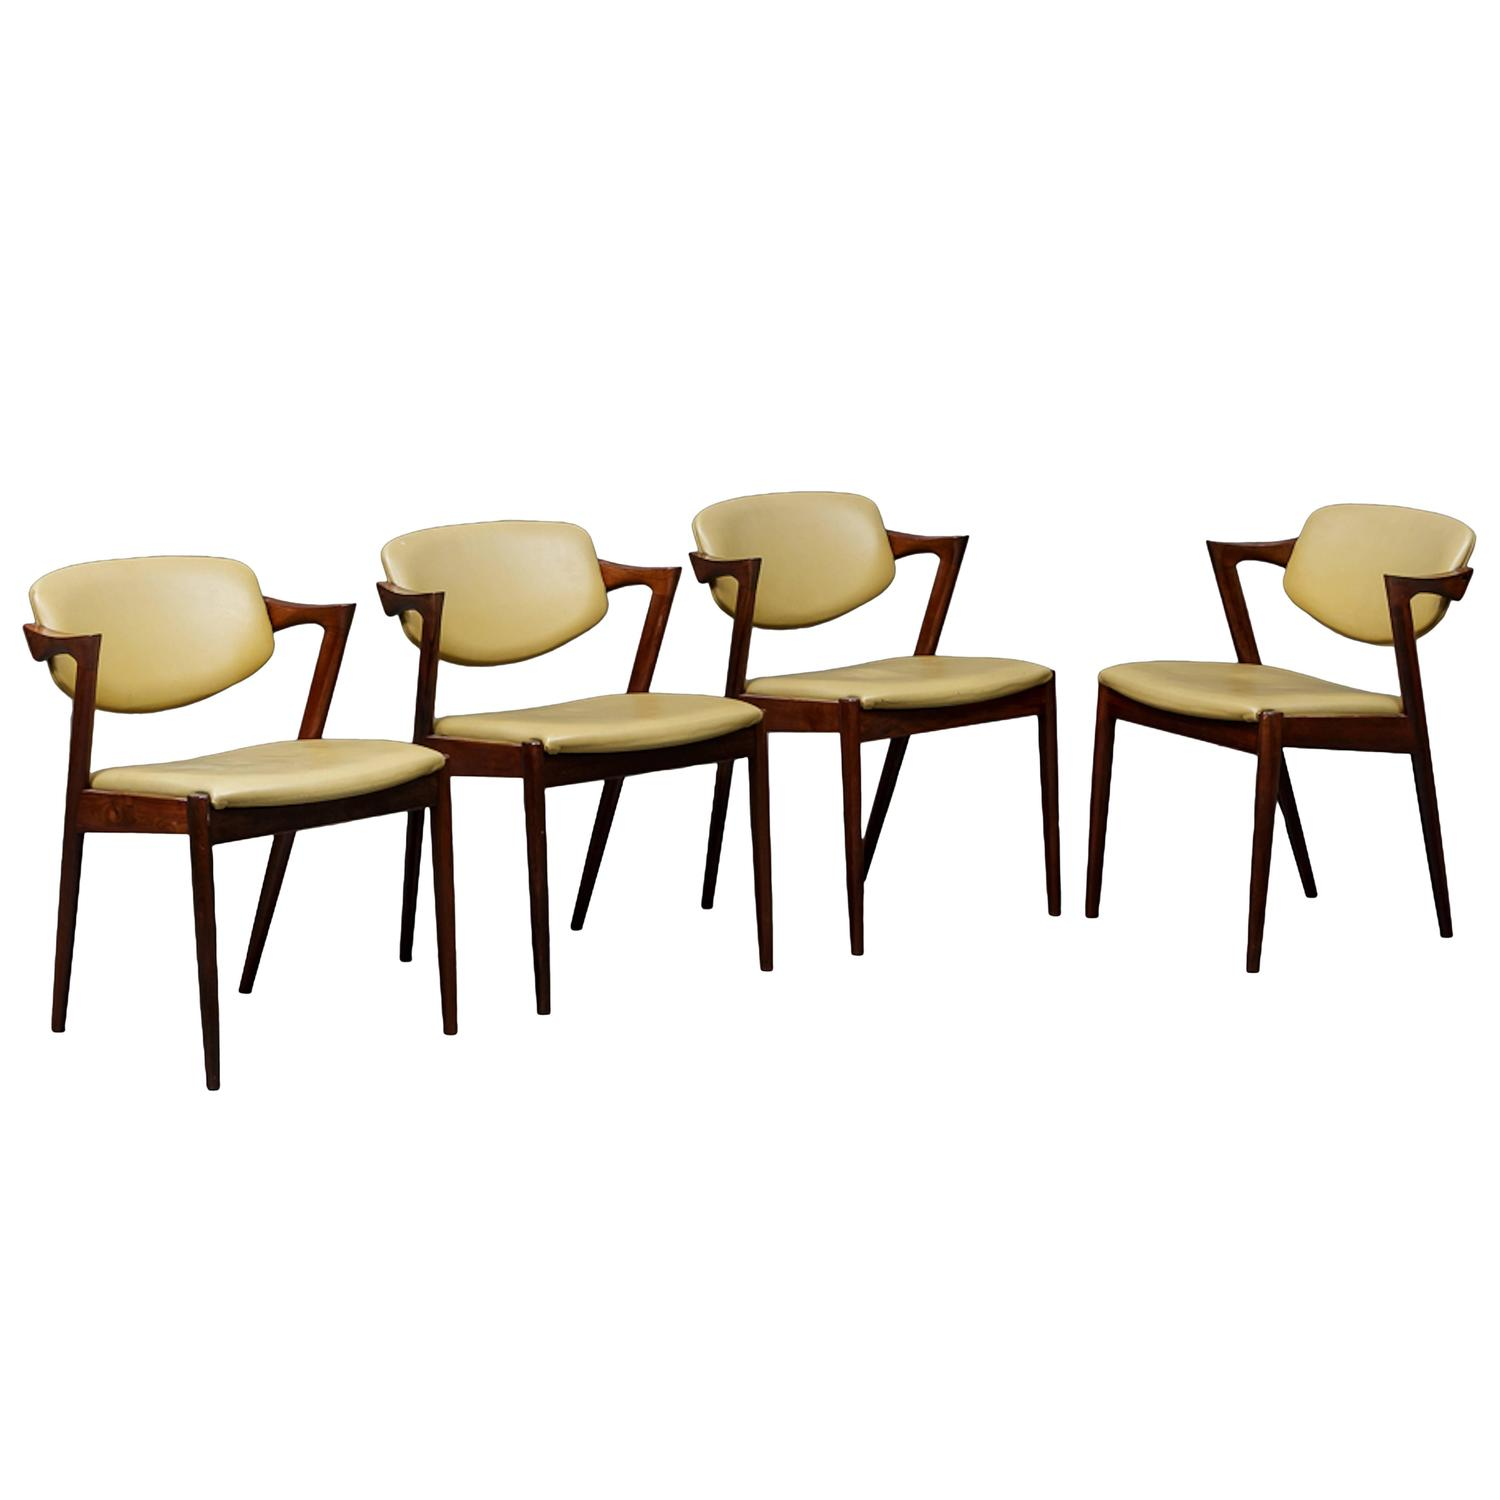 Four Kai Kristiansen Rosewood Dining Chairs At 1stdibs